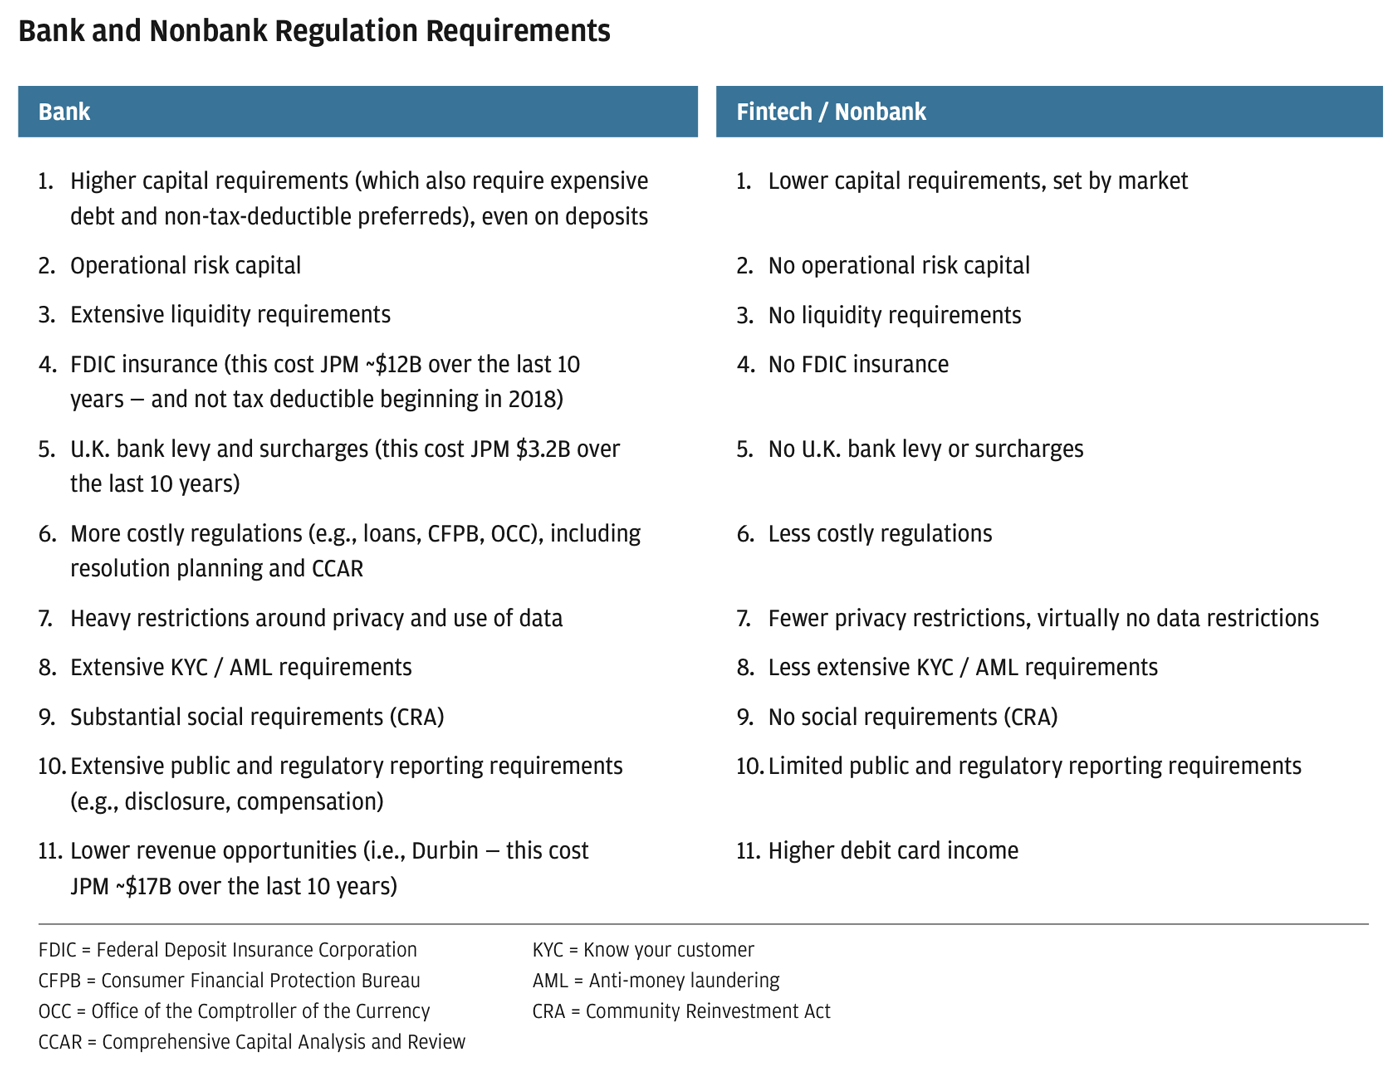 Chart showing current bank and nonbank regulation requirements split by Bank and Fintech/Nonbank